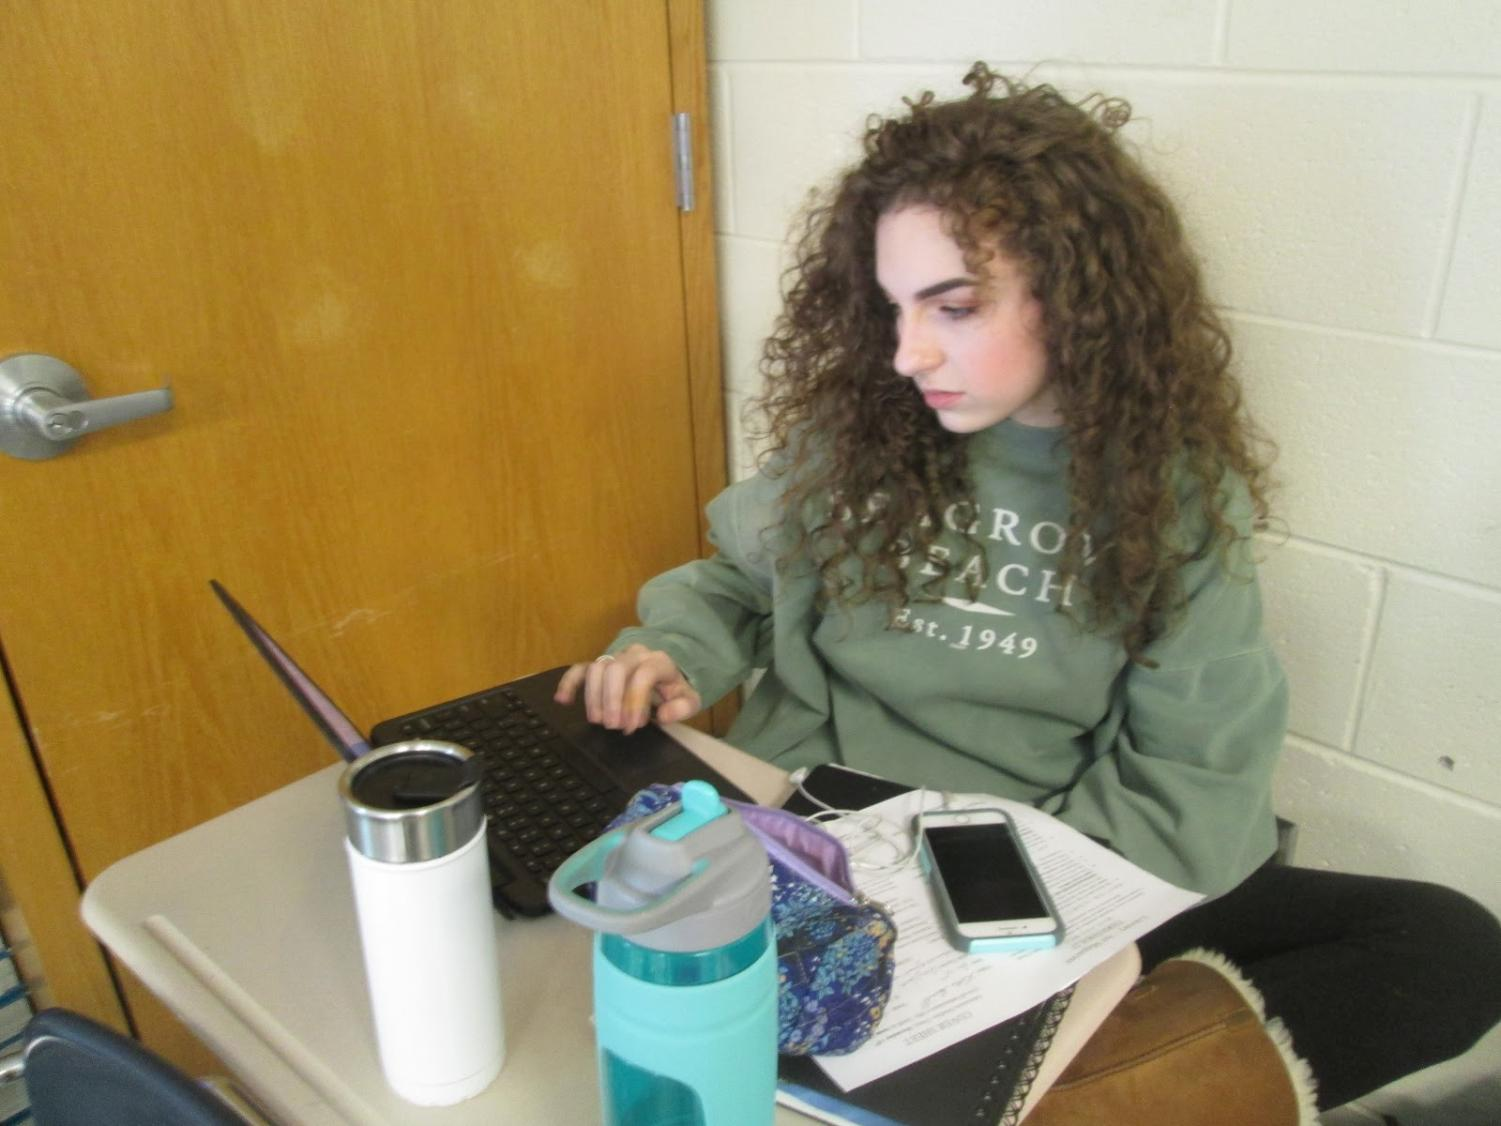 It is the time of year for students all over the world to stay up late into the night studying for one of the most important tests of the year: midterms. Junior, Katie Harrill, uses all the time she can get to study.